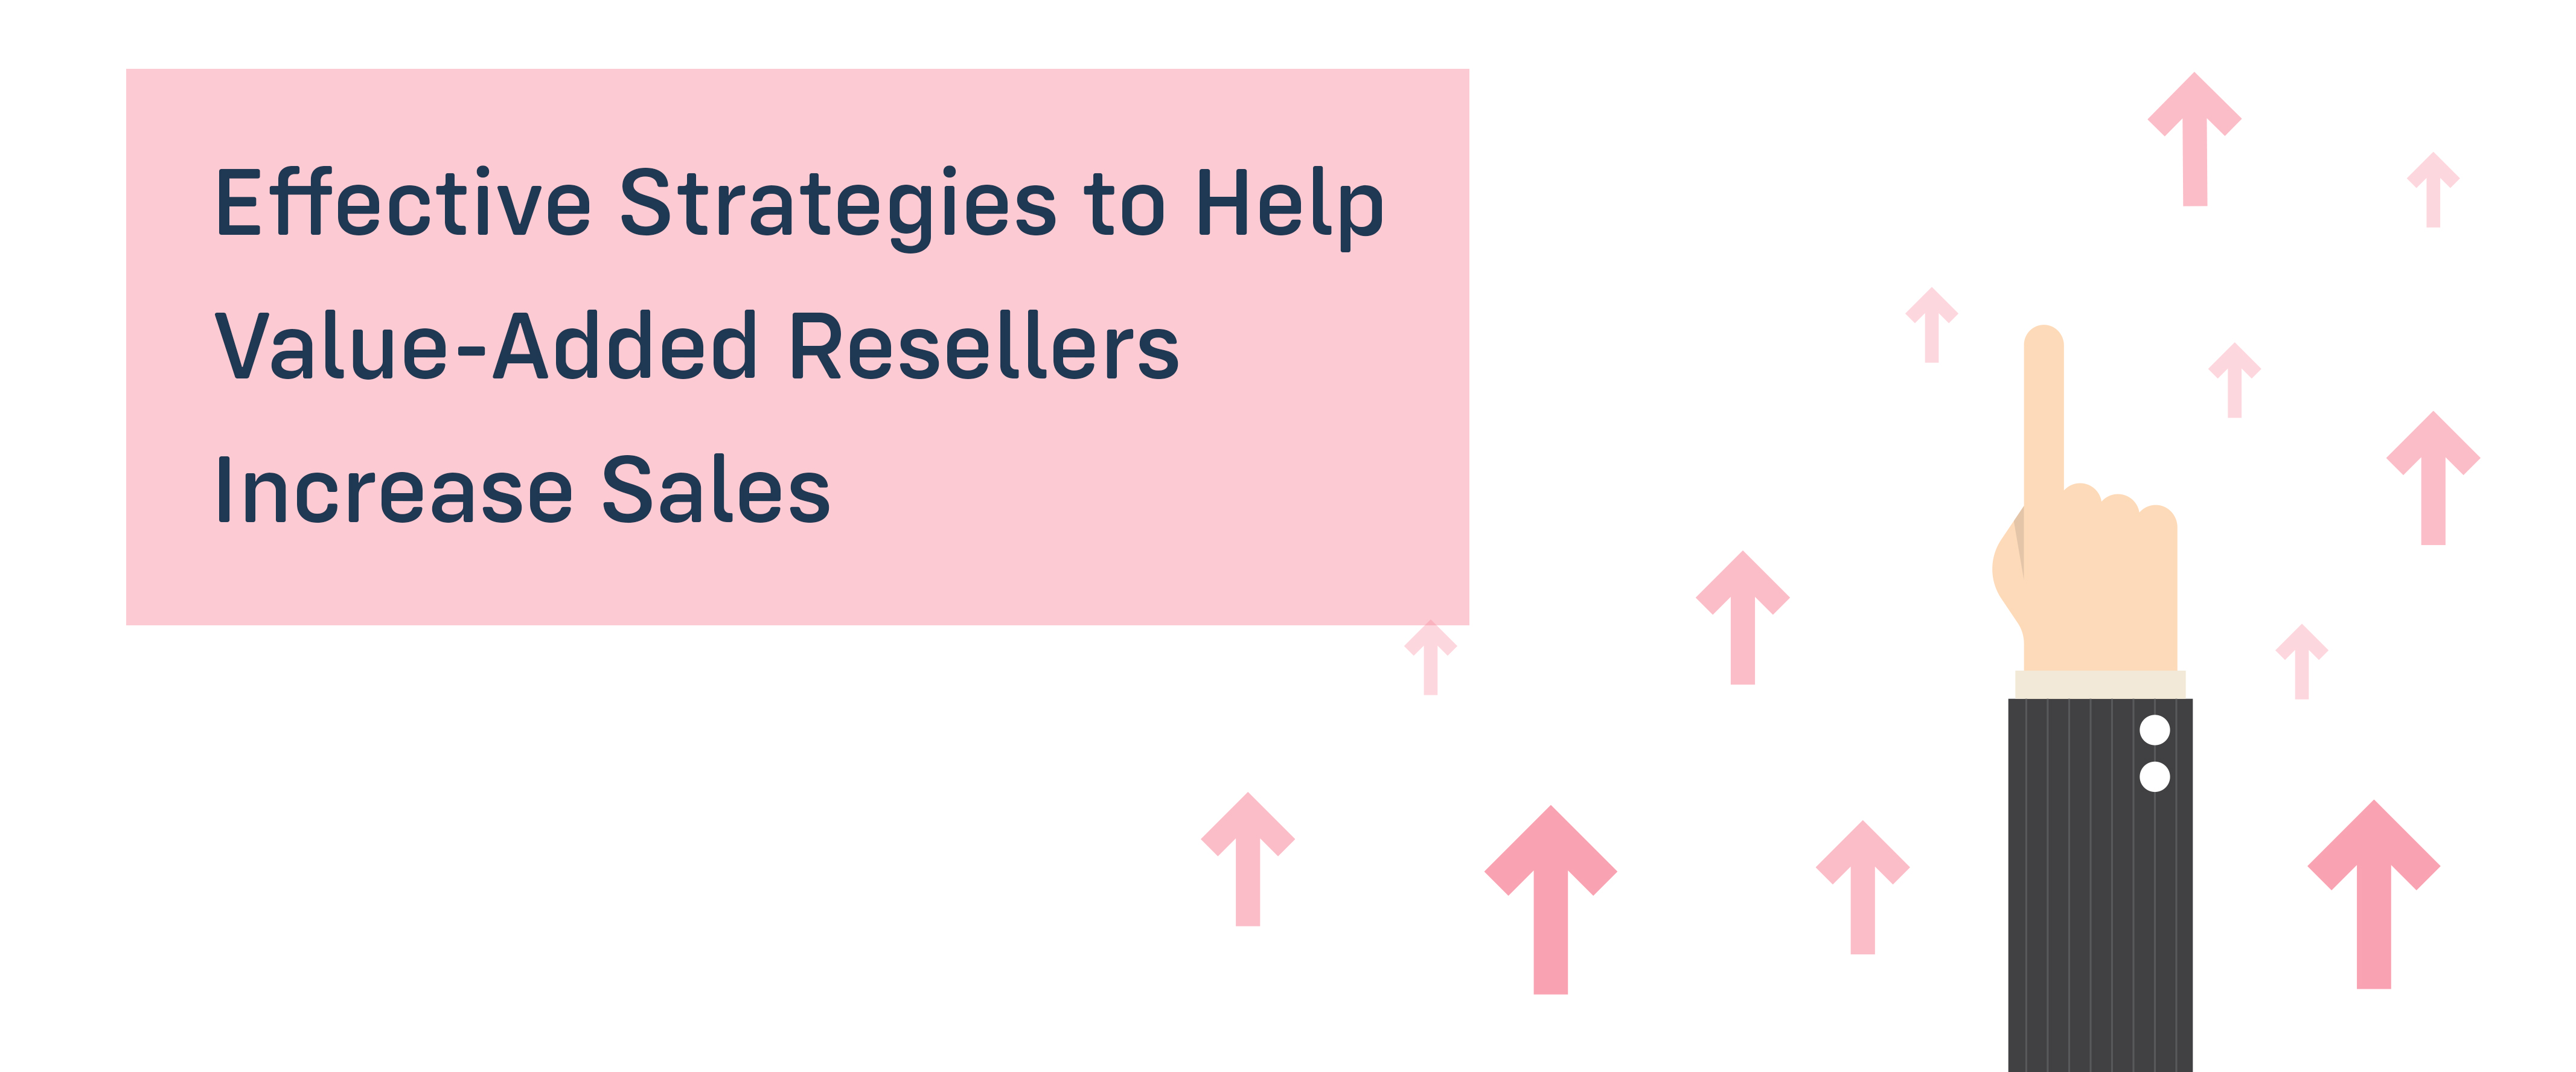 Effective Strategies to Help Value-Added Resellers Increase Sales